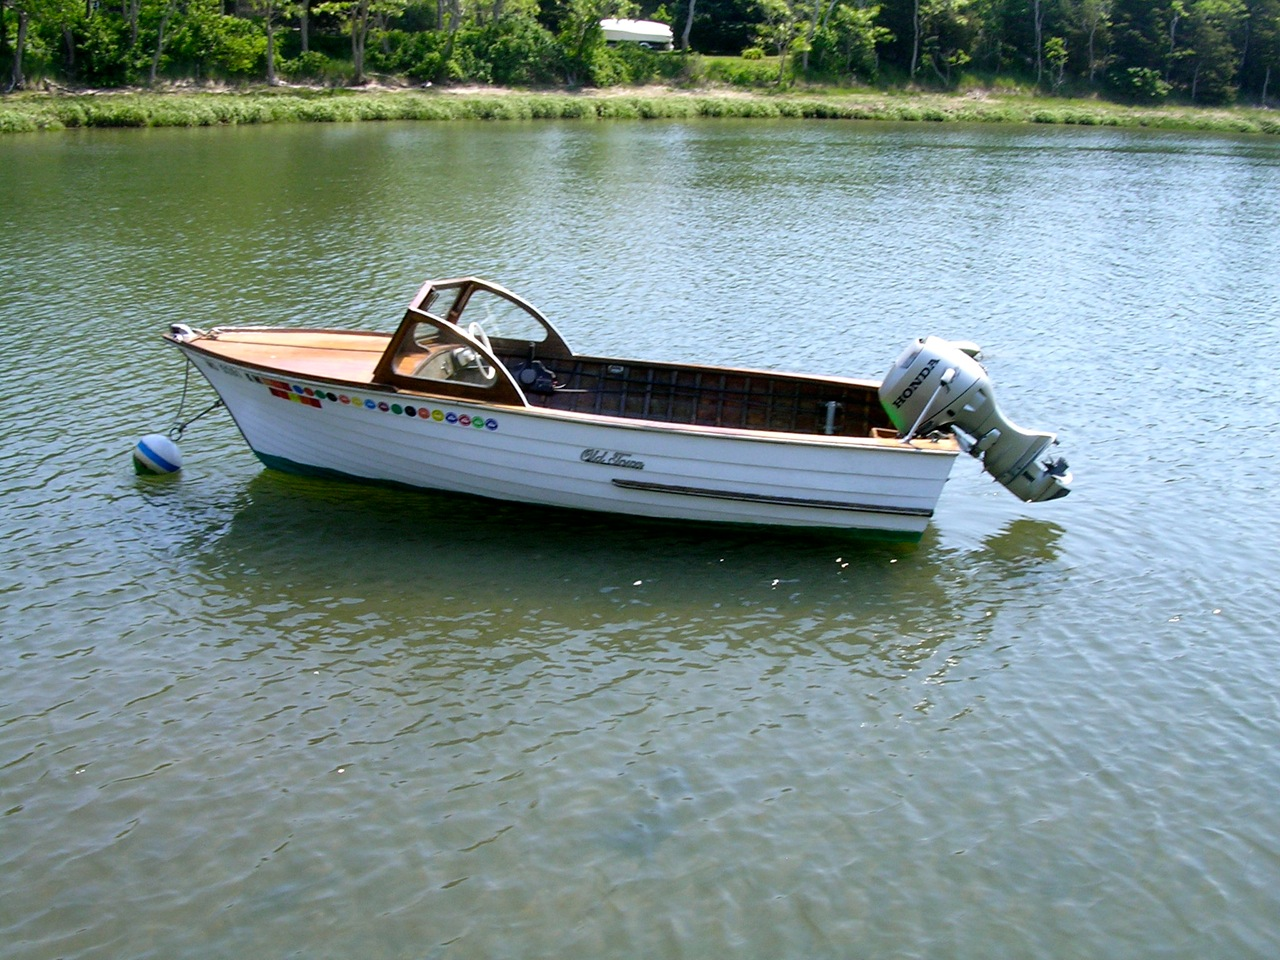 Old motor boat plans boat stores ottawa ontario events Best motor boats